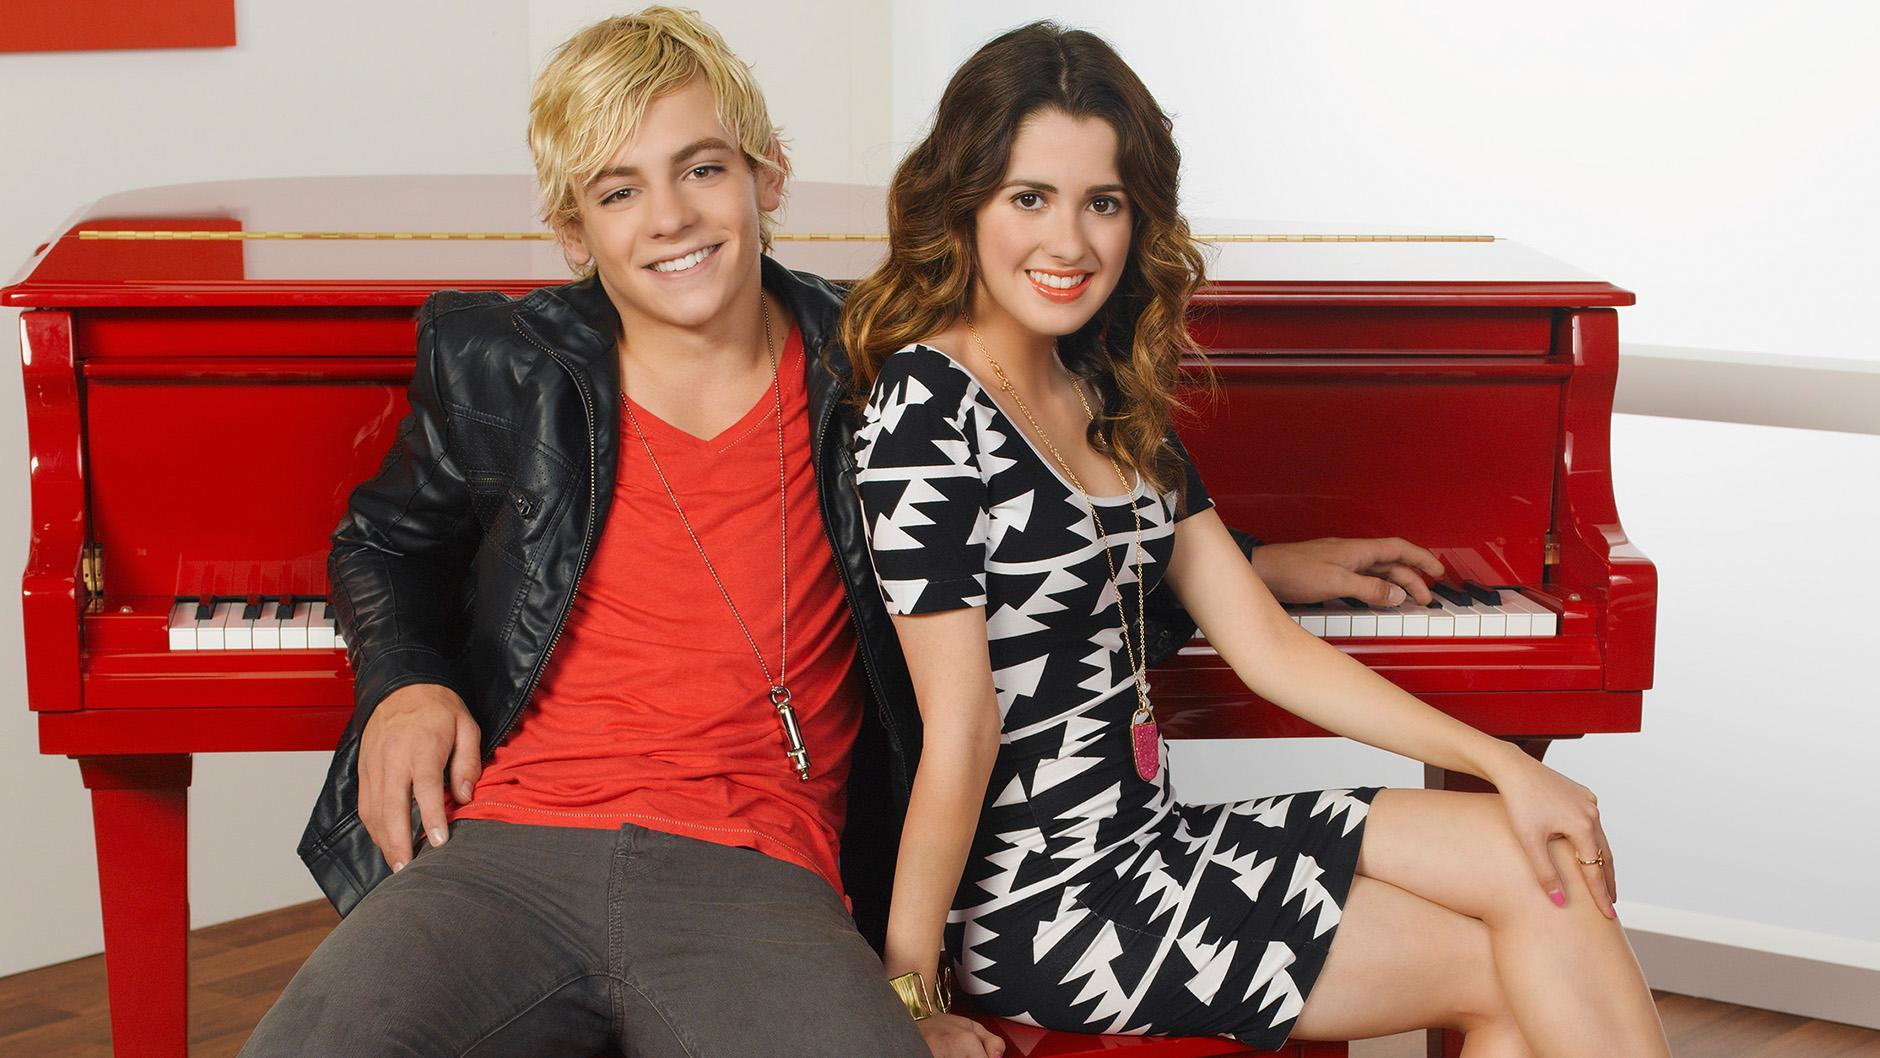 austin & ally page